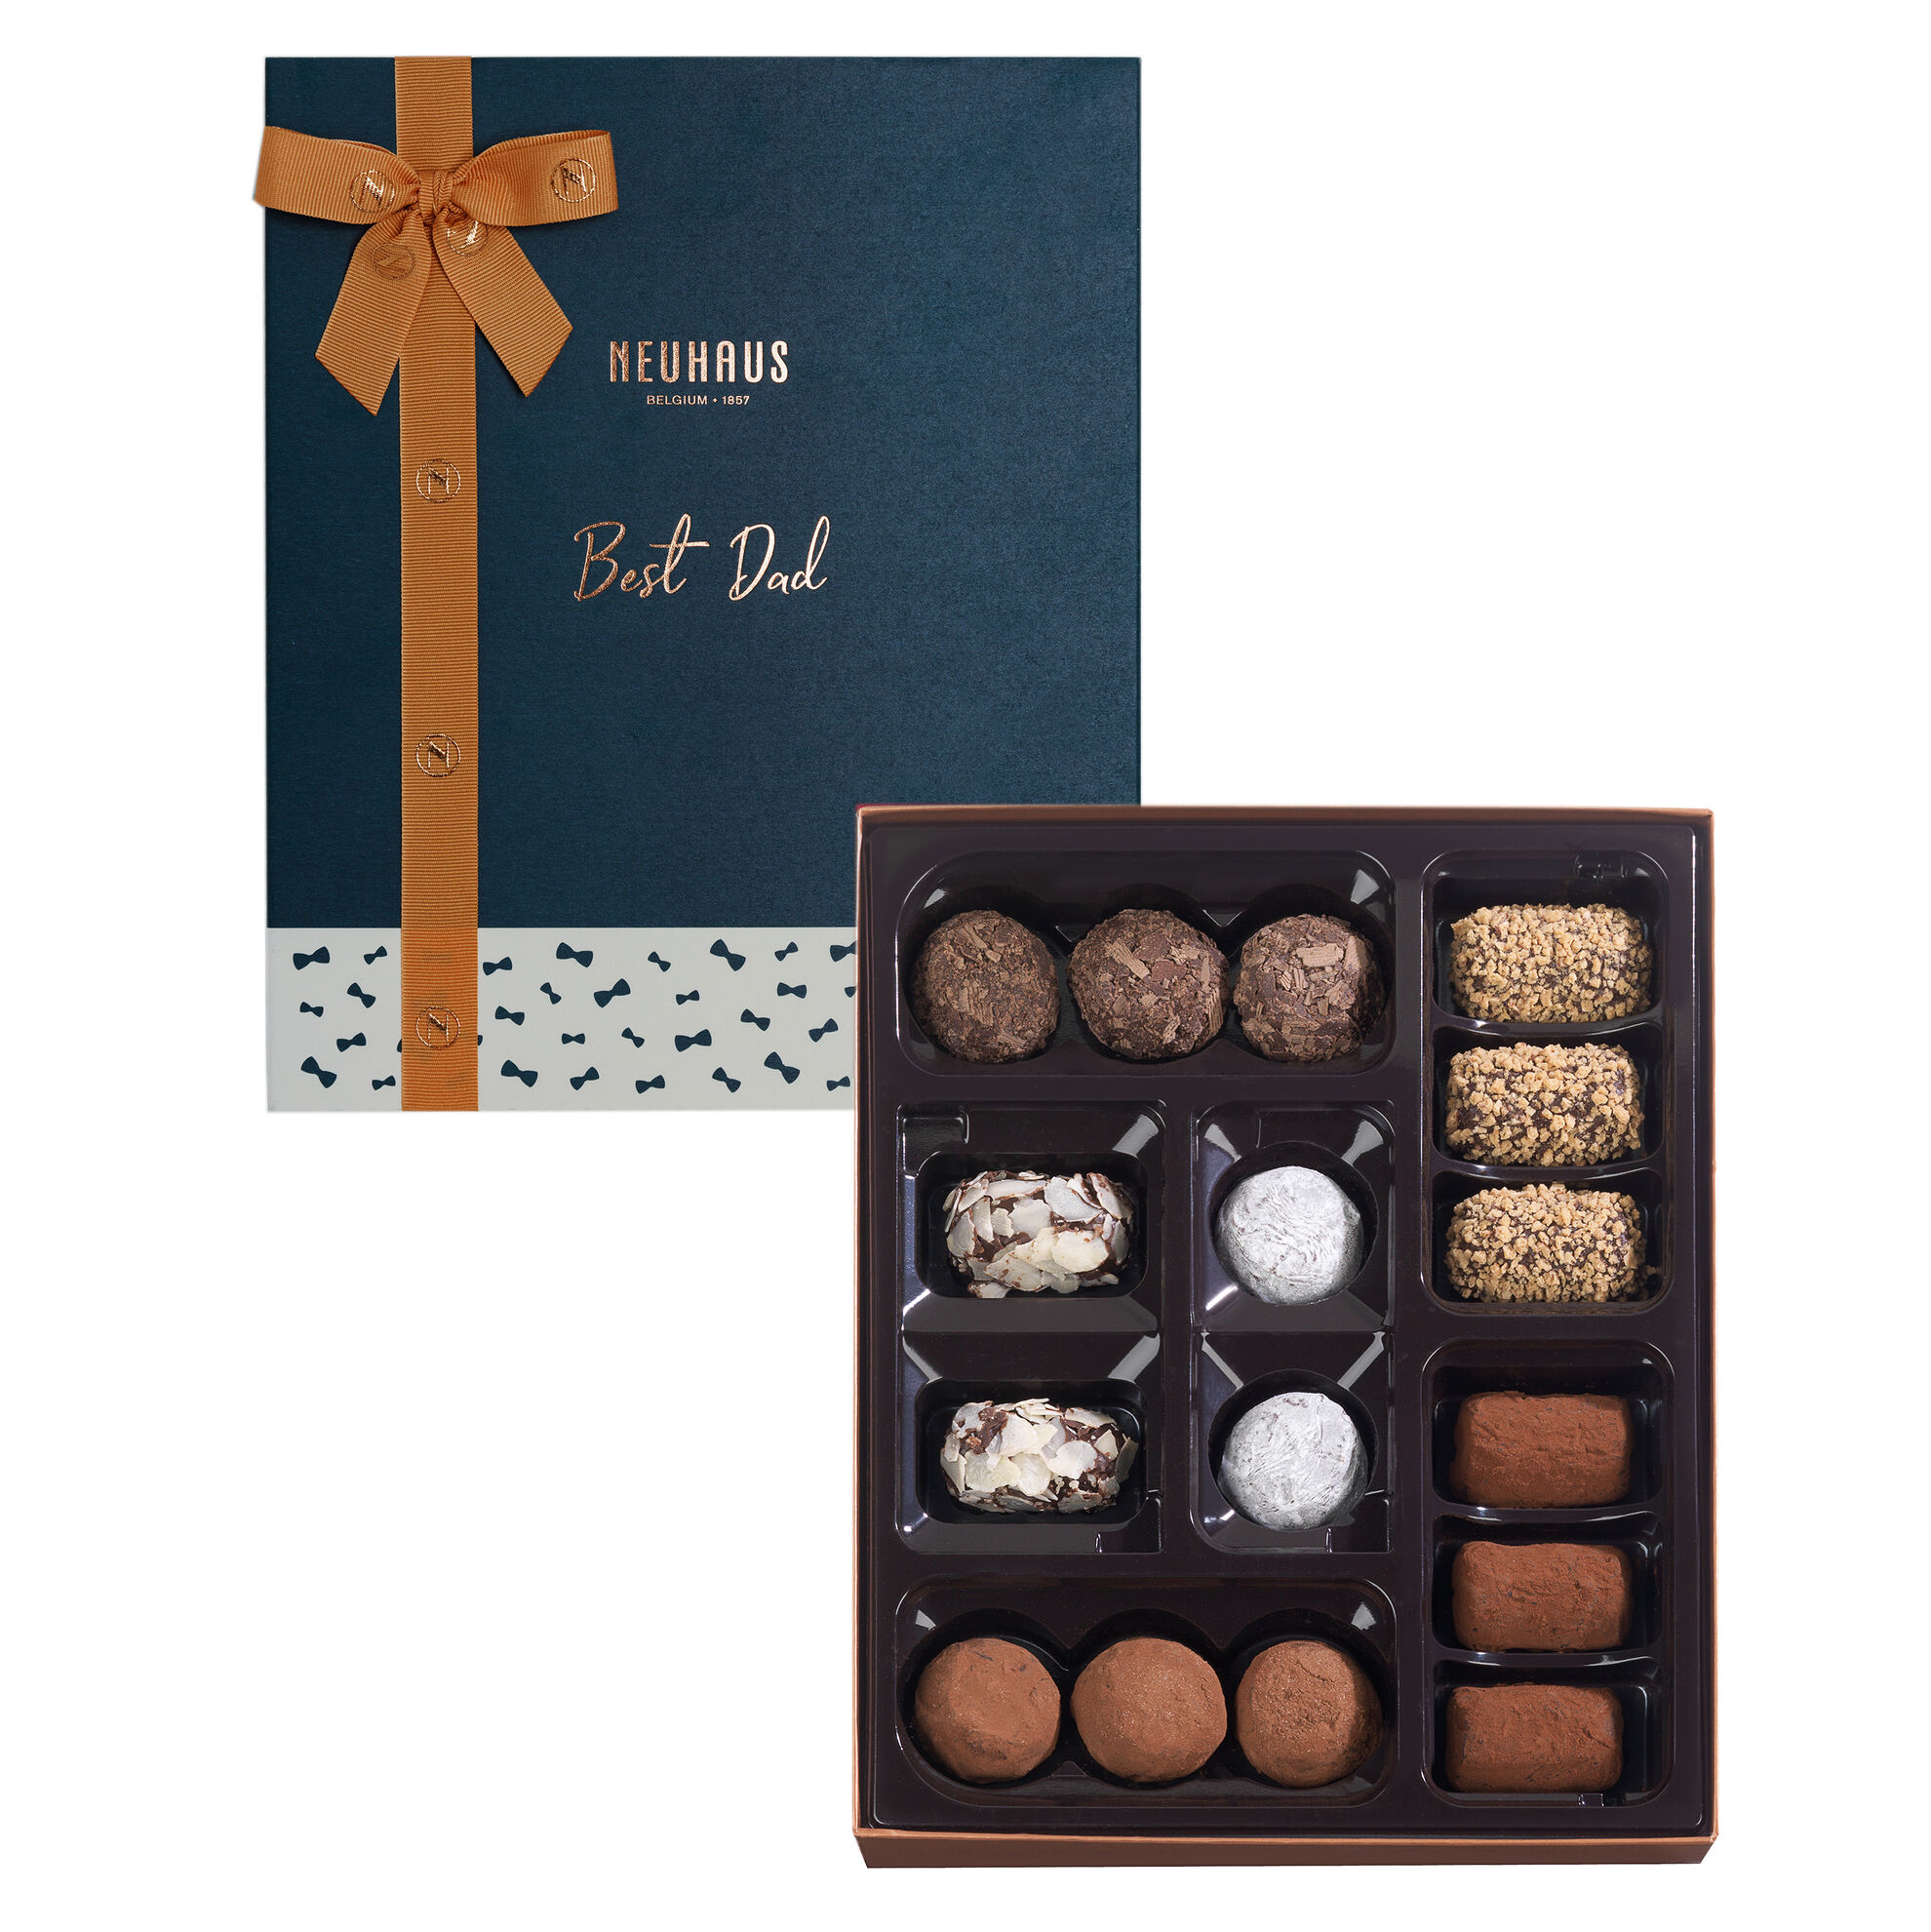 Best Dad Truffle Collection 16 pcs image number 01